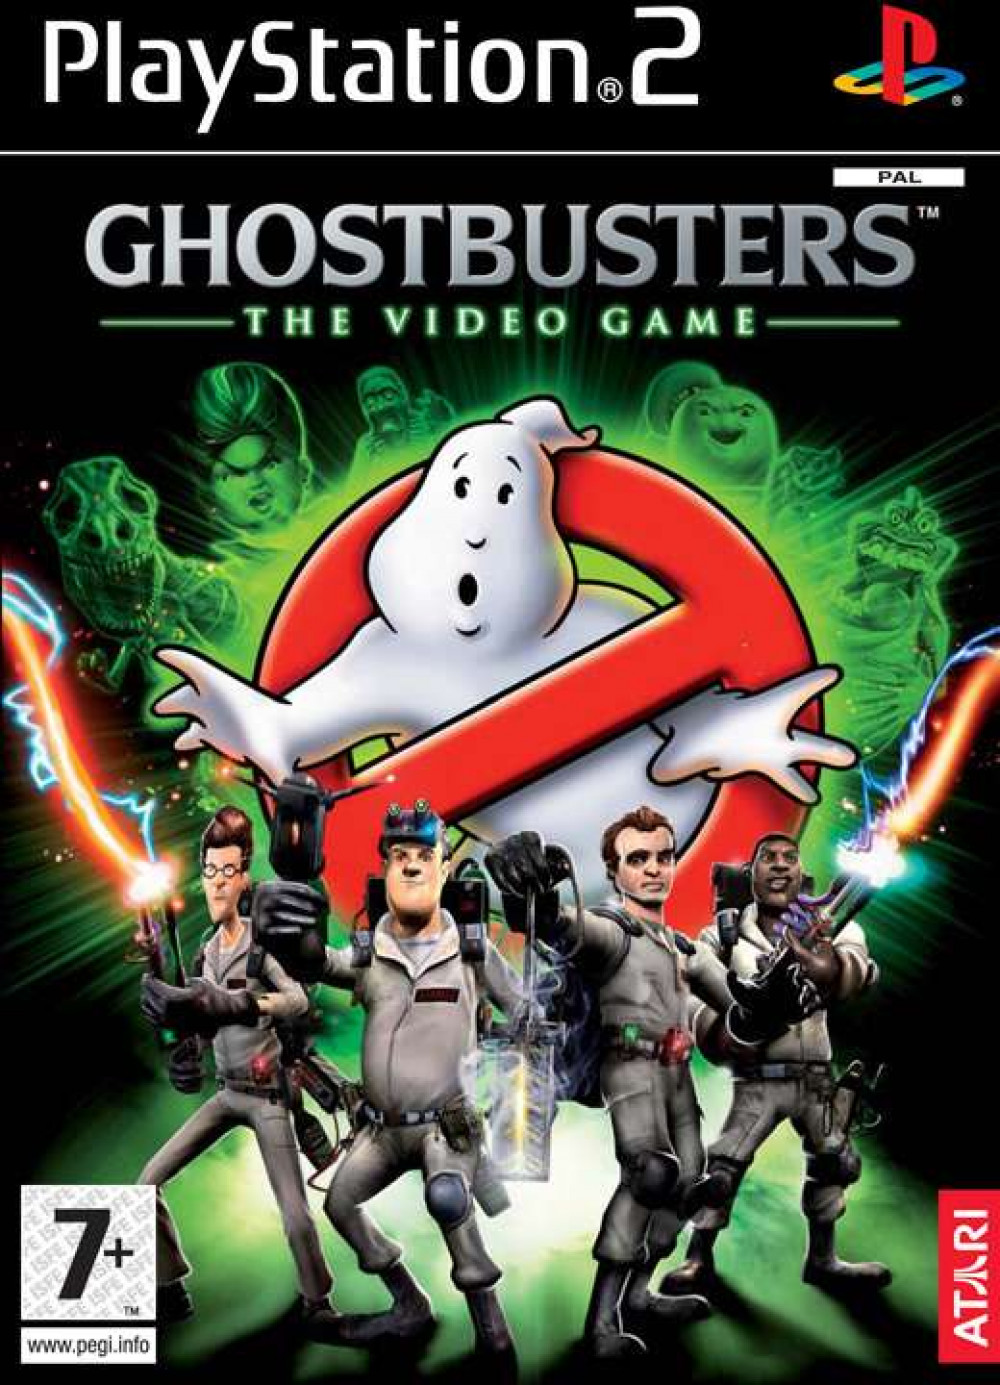 PS3 GHOSTBUSTERS The Video Game